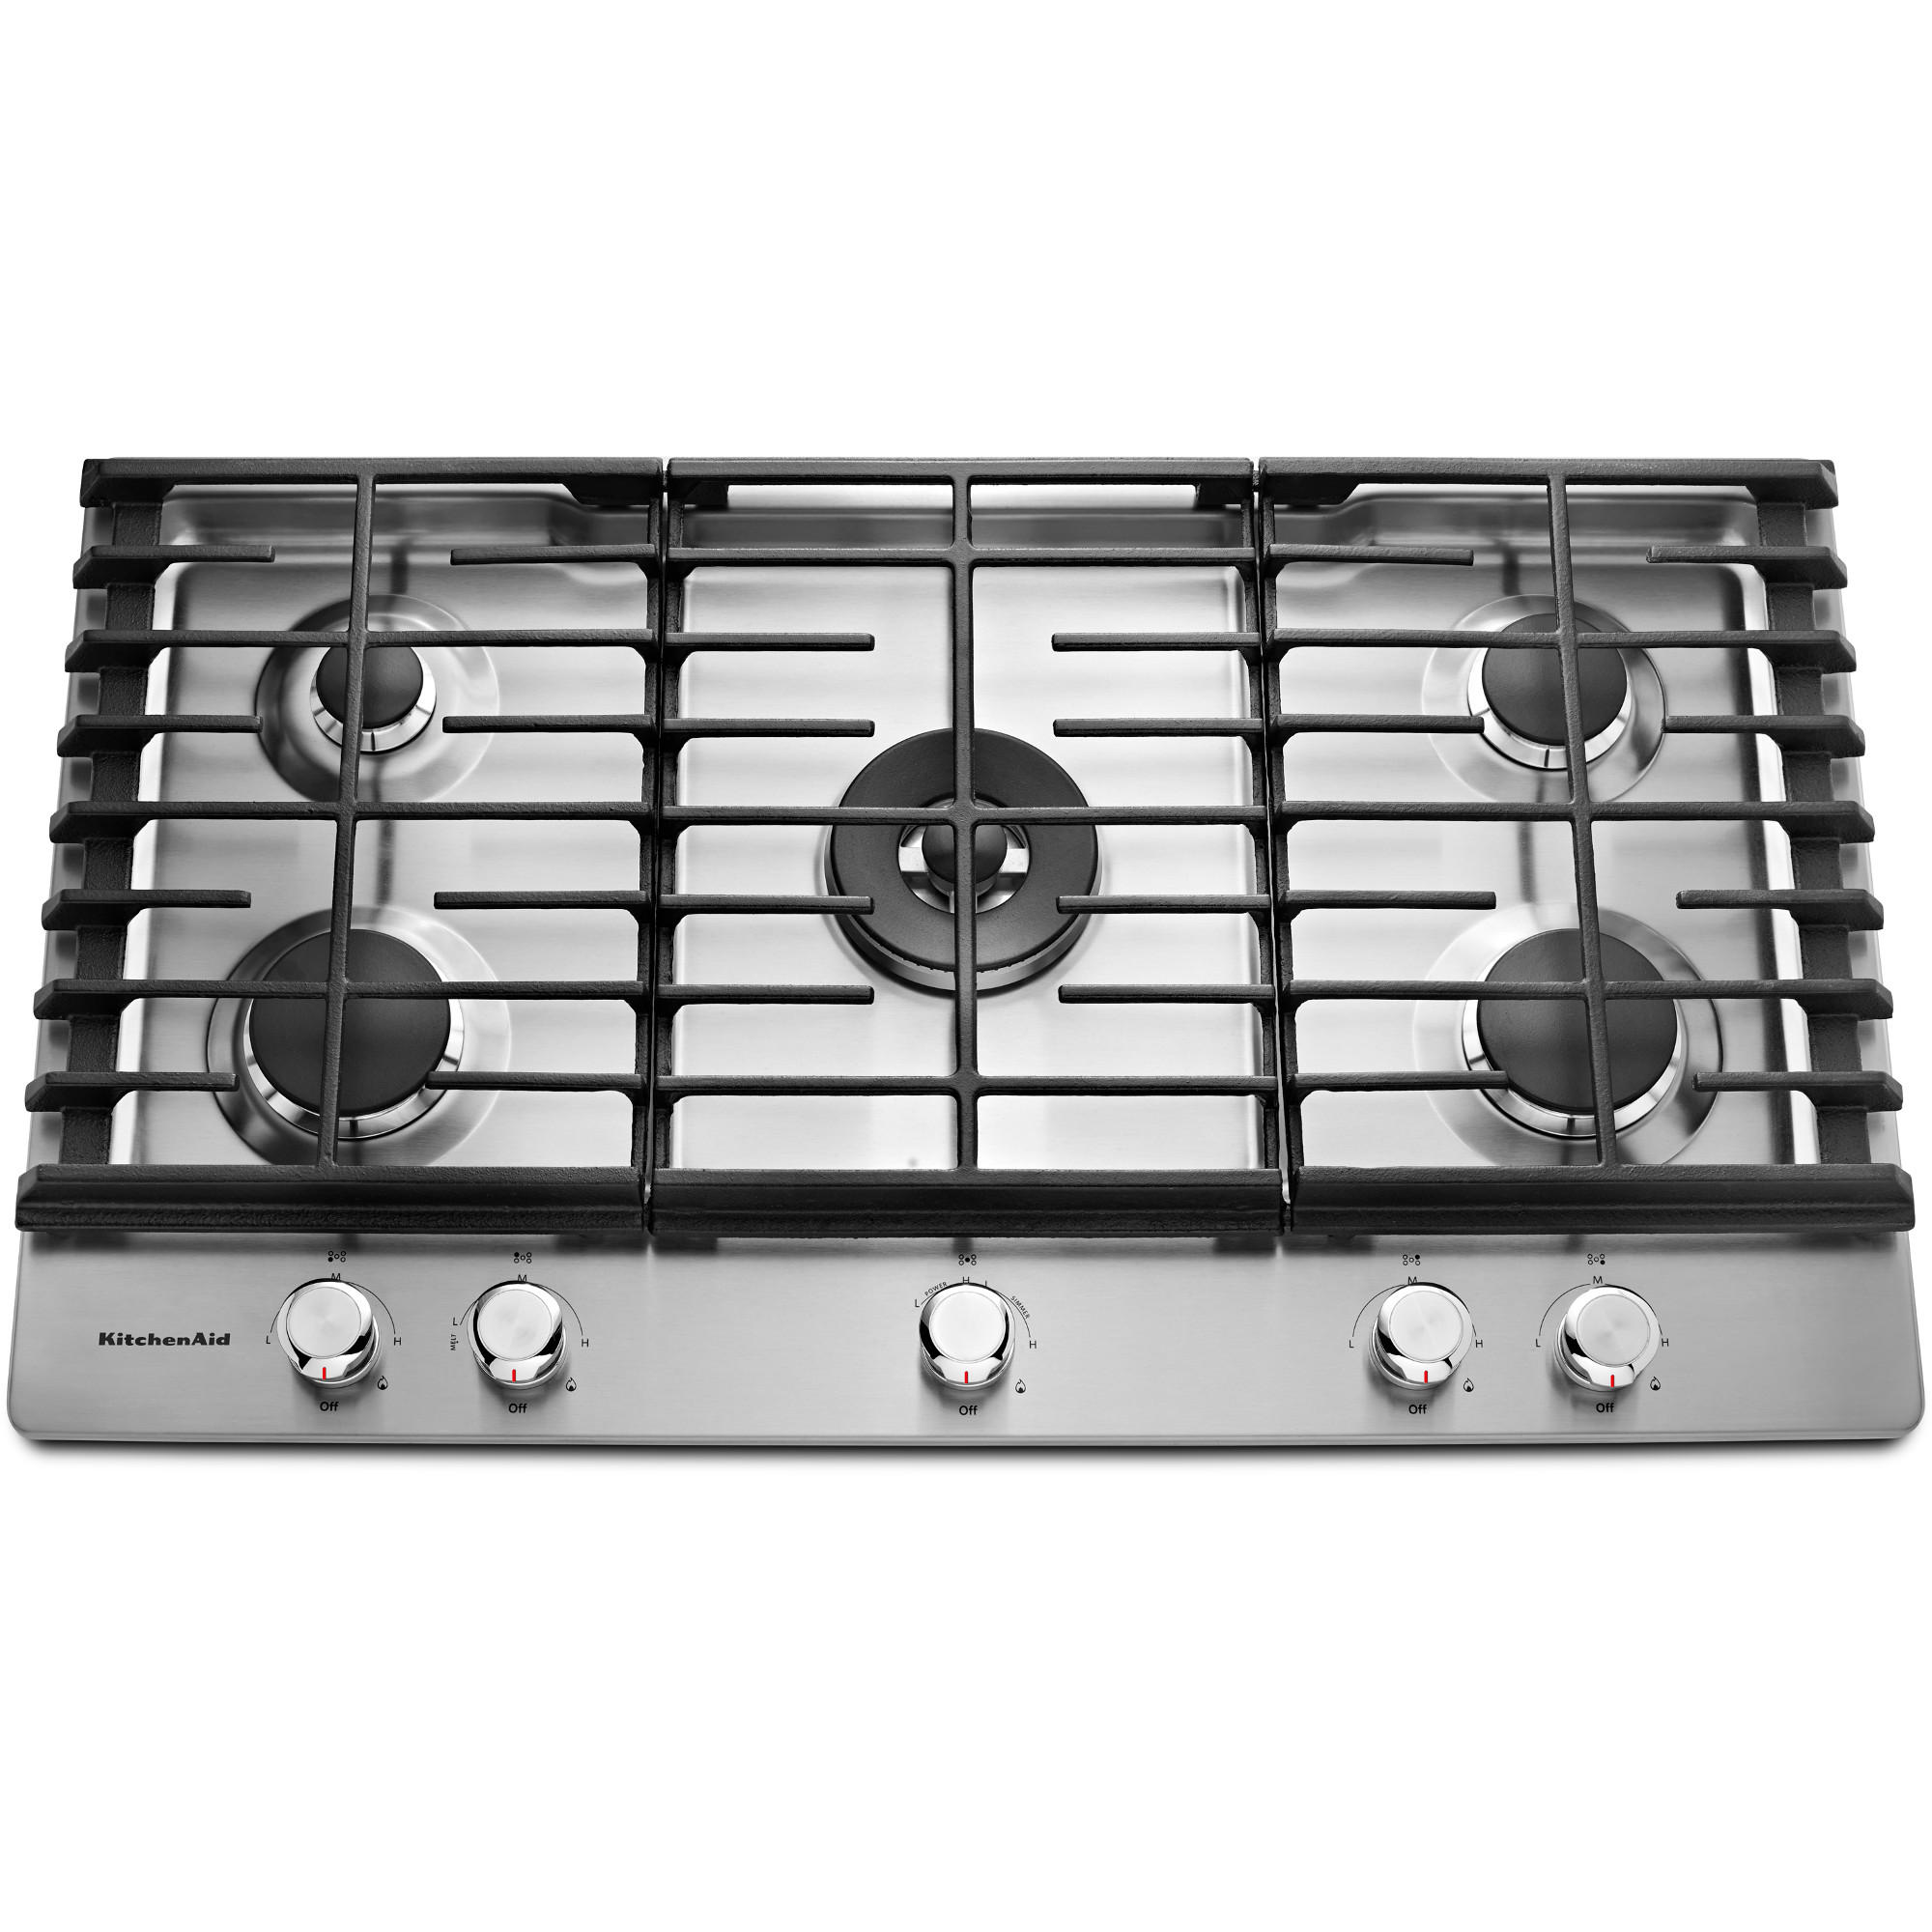 KitchenAid KCGS556ESS 36 Gas Cooktop w/ 20K BTU Professional Dual Ring Burner - Stainless Steel